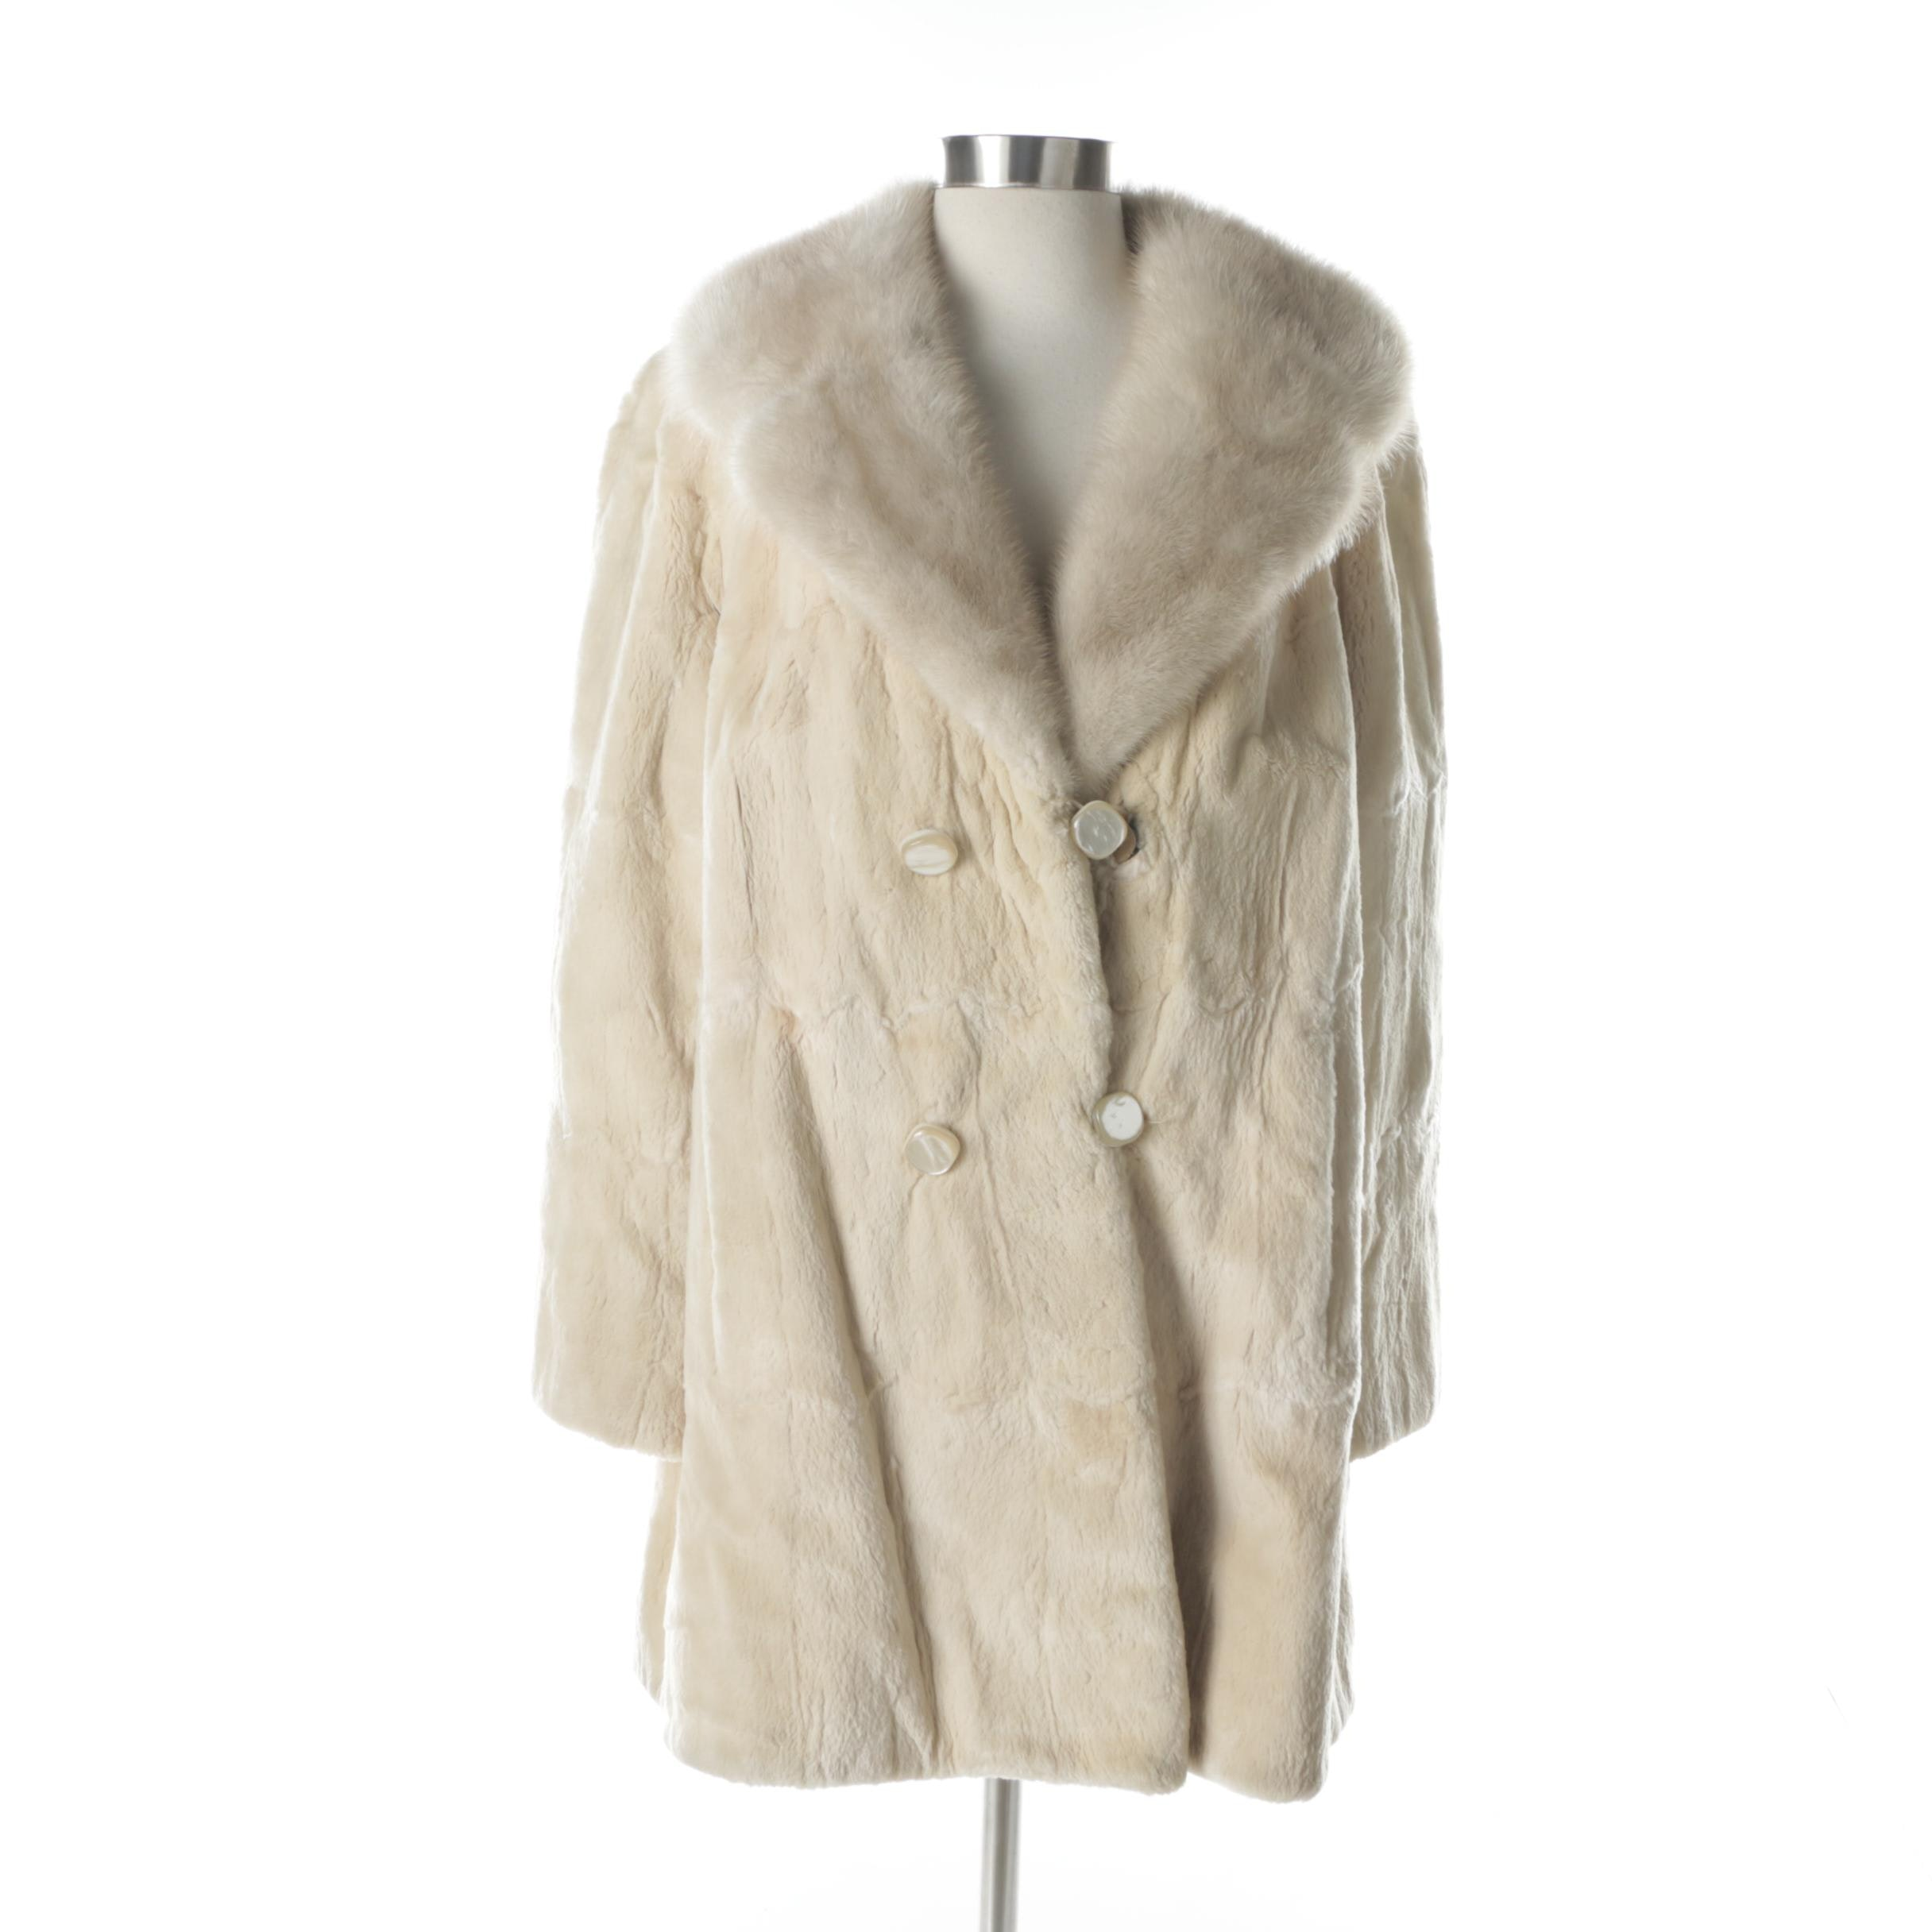 The Denver Chinchilla Fur Coat with Mink Collar